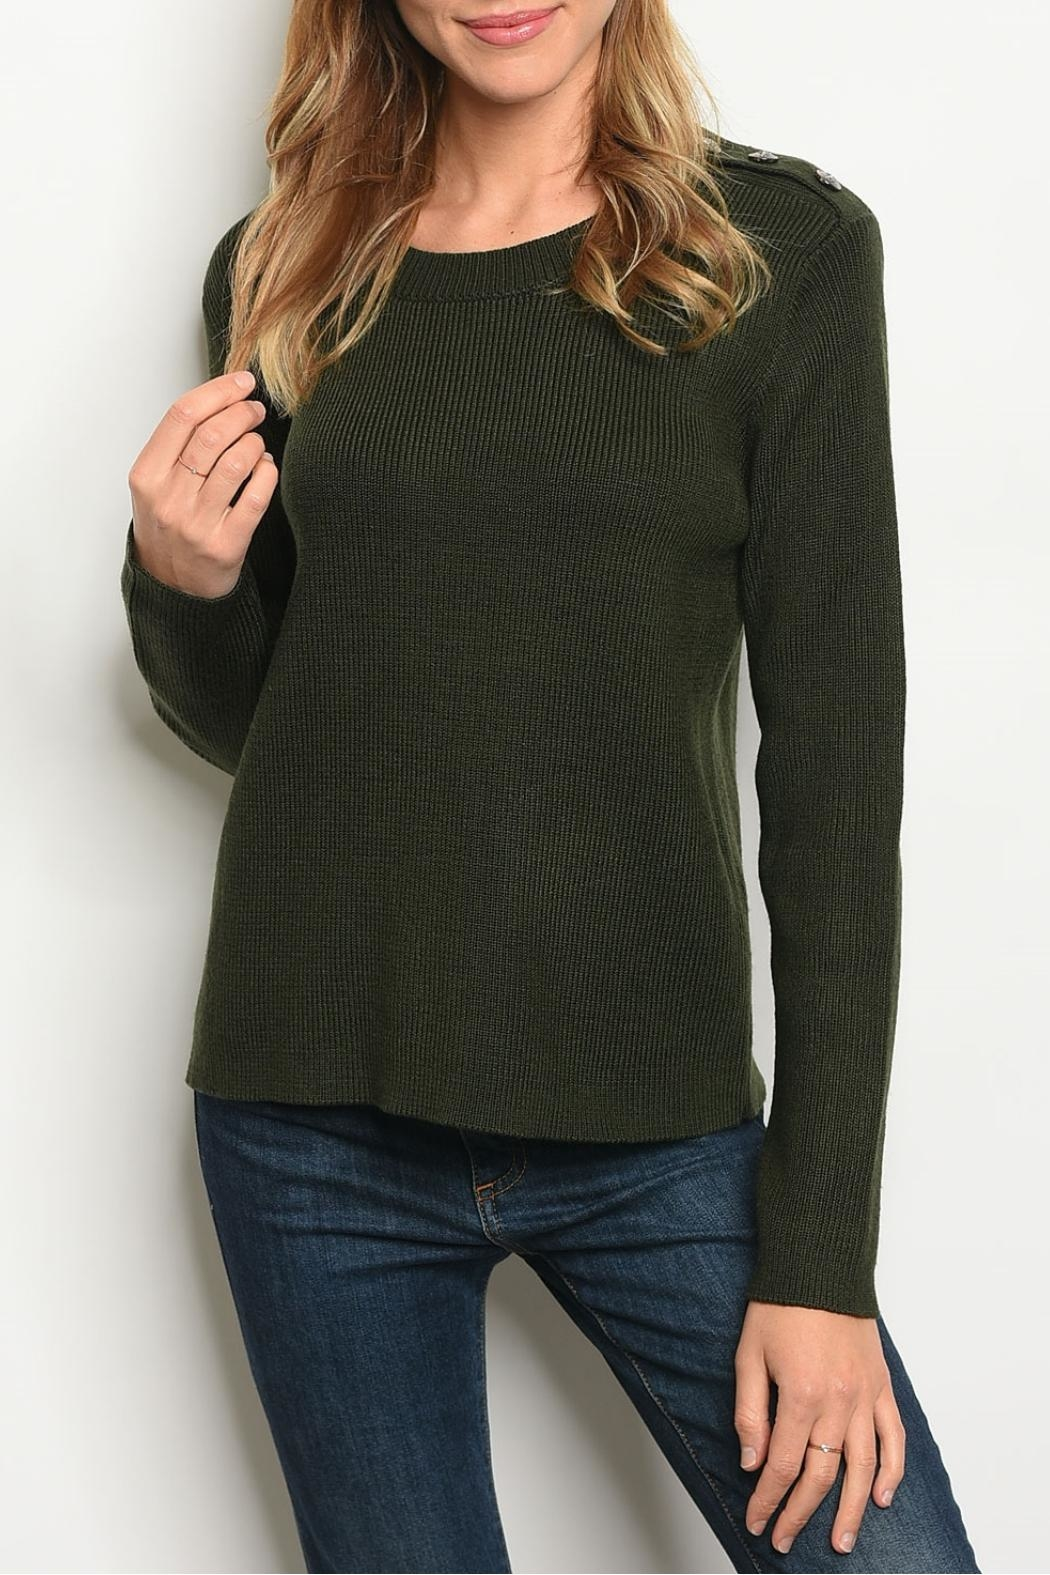 Le Lis Olive Knit Sweater - Main Image